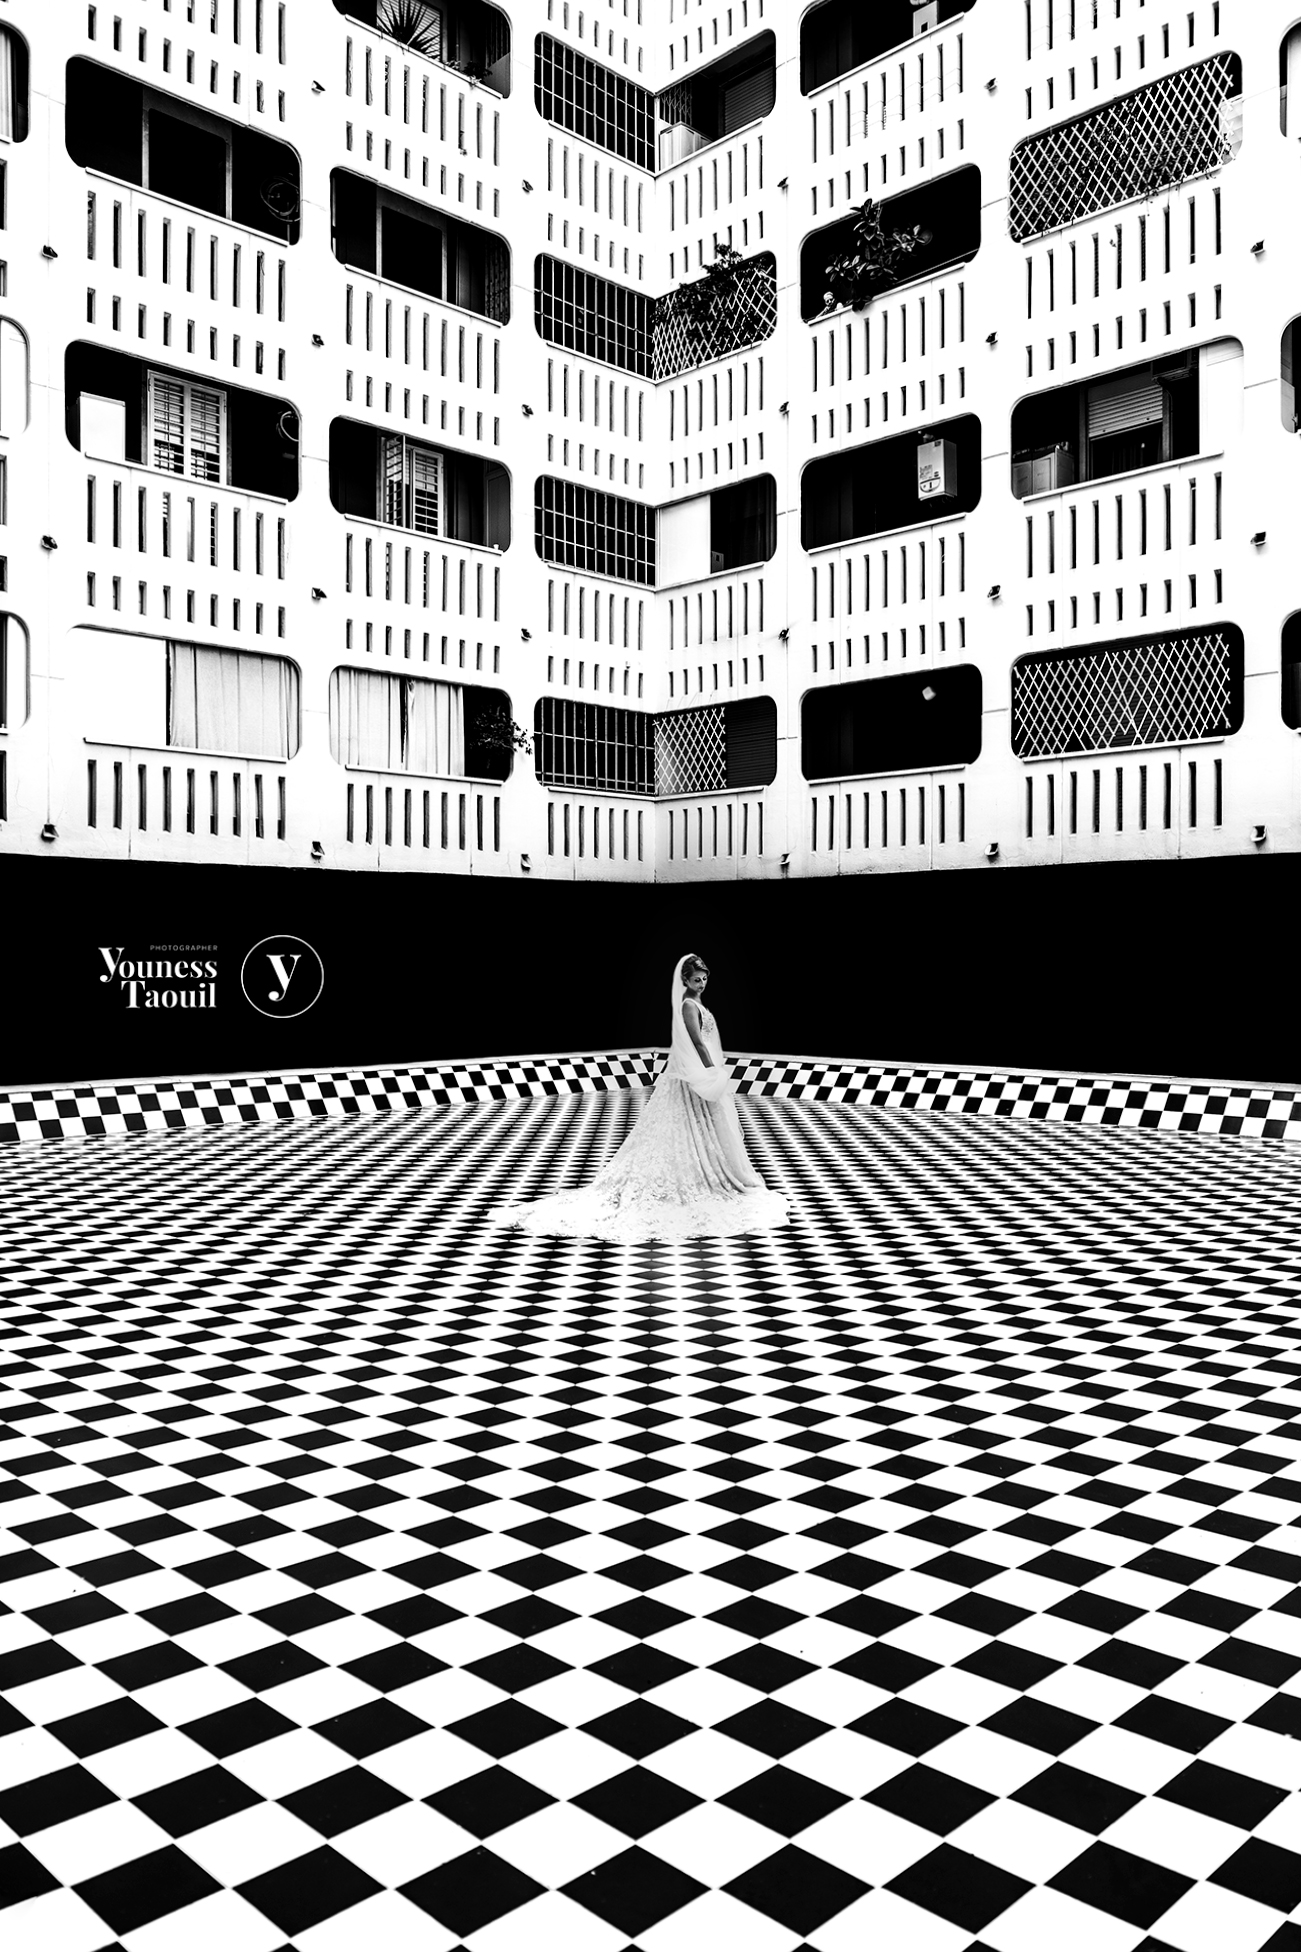 The Queen and her chessboard ...